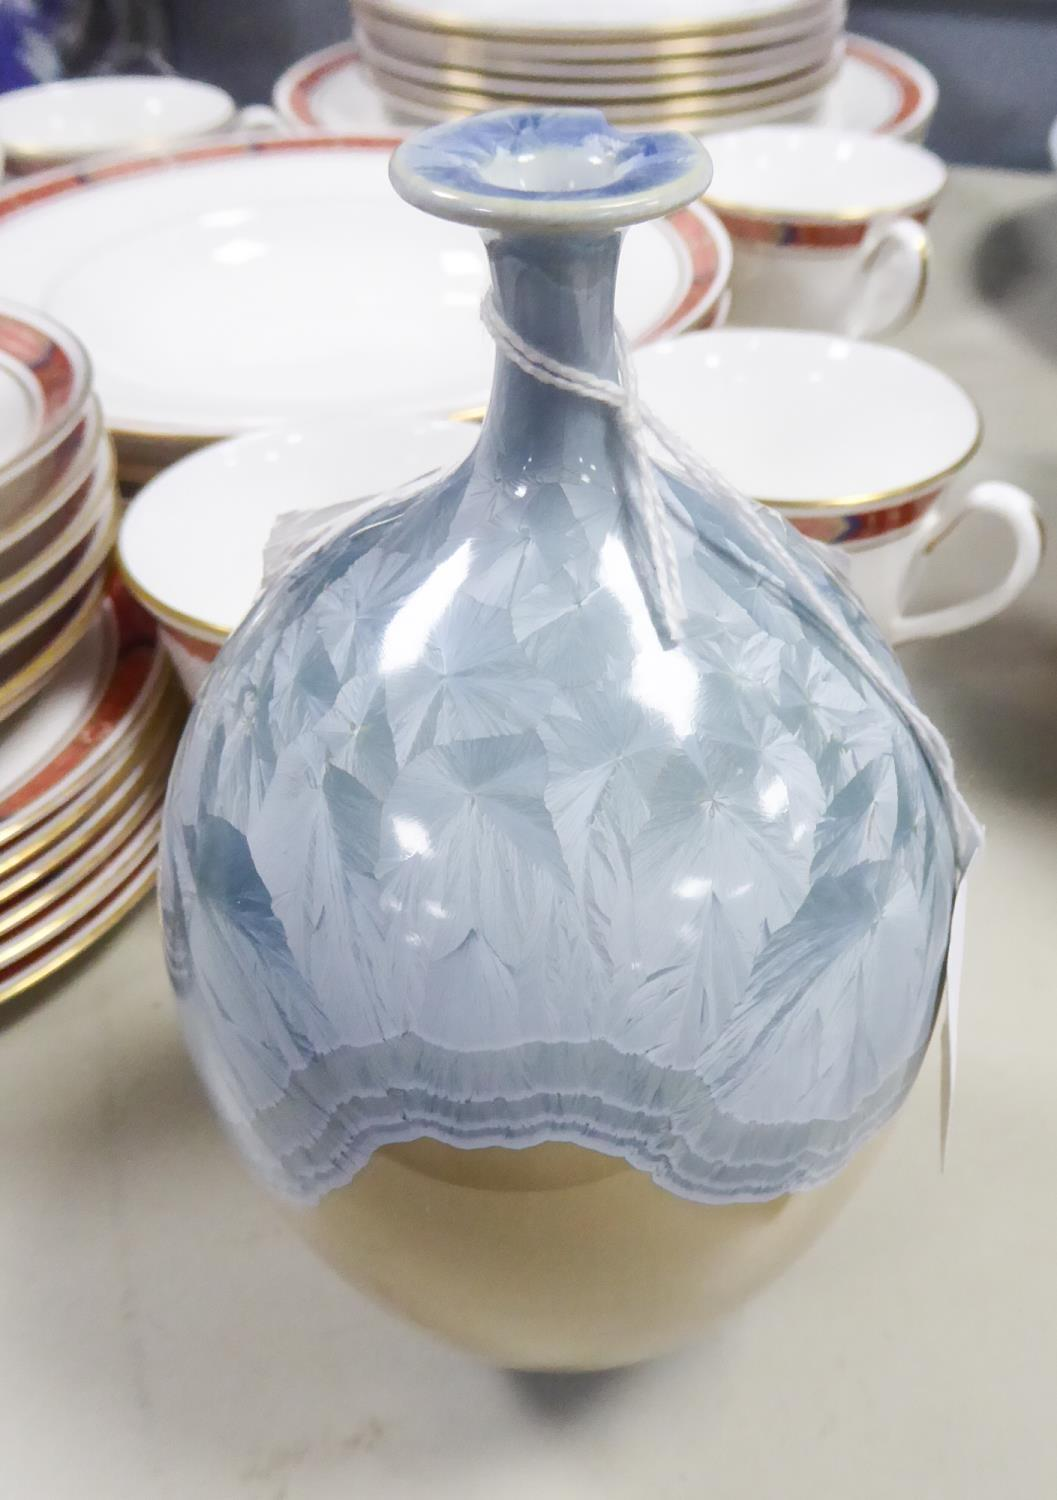 Lot 19 - STUDIO POTTERY VASE, ovoid with slender trumpet shaped neck, small circular base, the top half